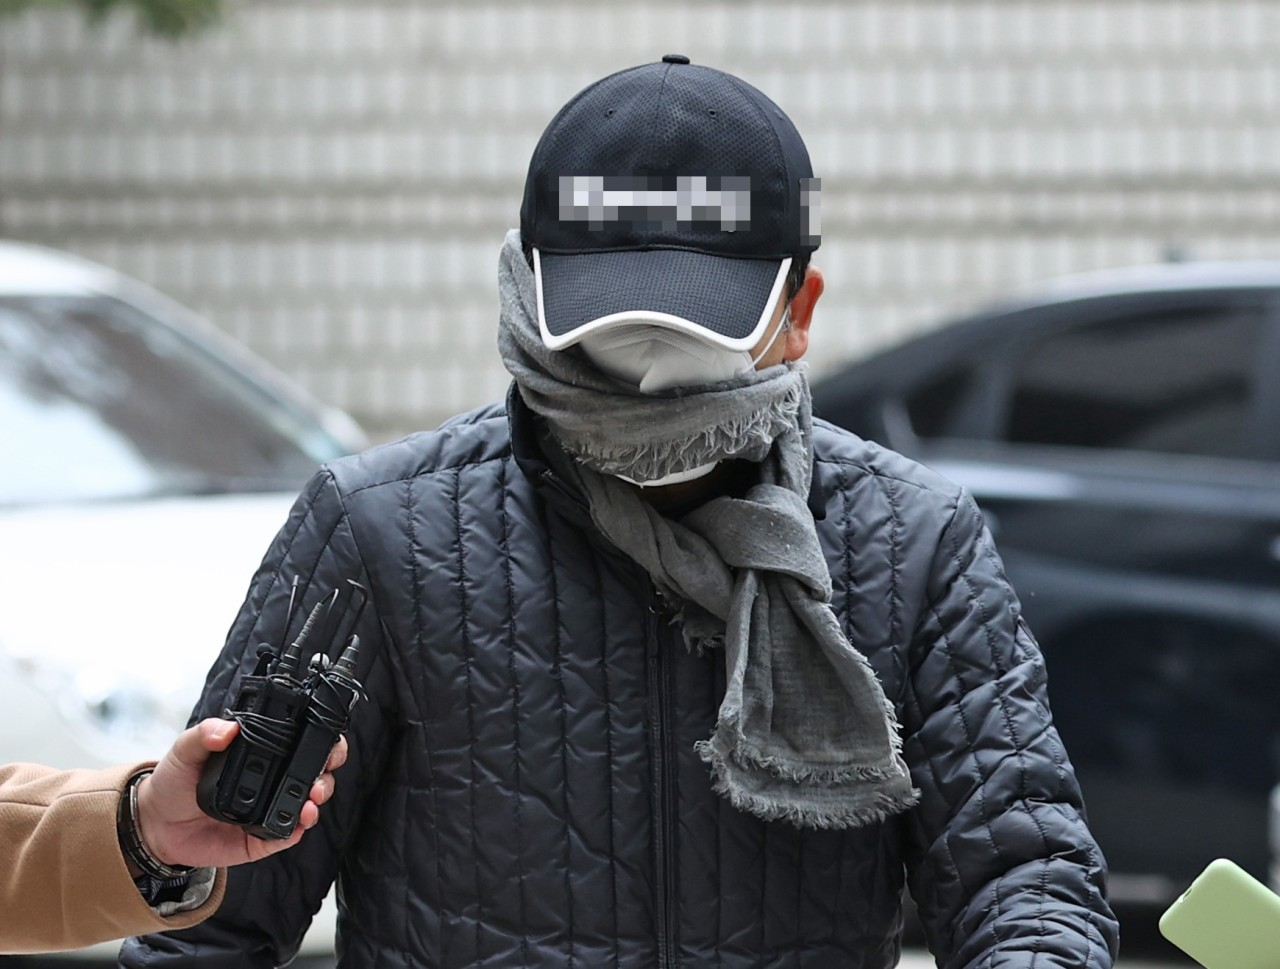 A suspect, surnamed Shin, in the Optimus financial fraud scheme arrives at the Seoul Central District Court to attend a hearing over his arrest warrant on Nov. 17, 2020. (Yonhap)